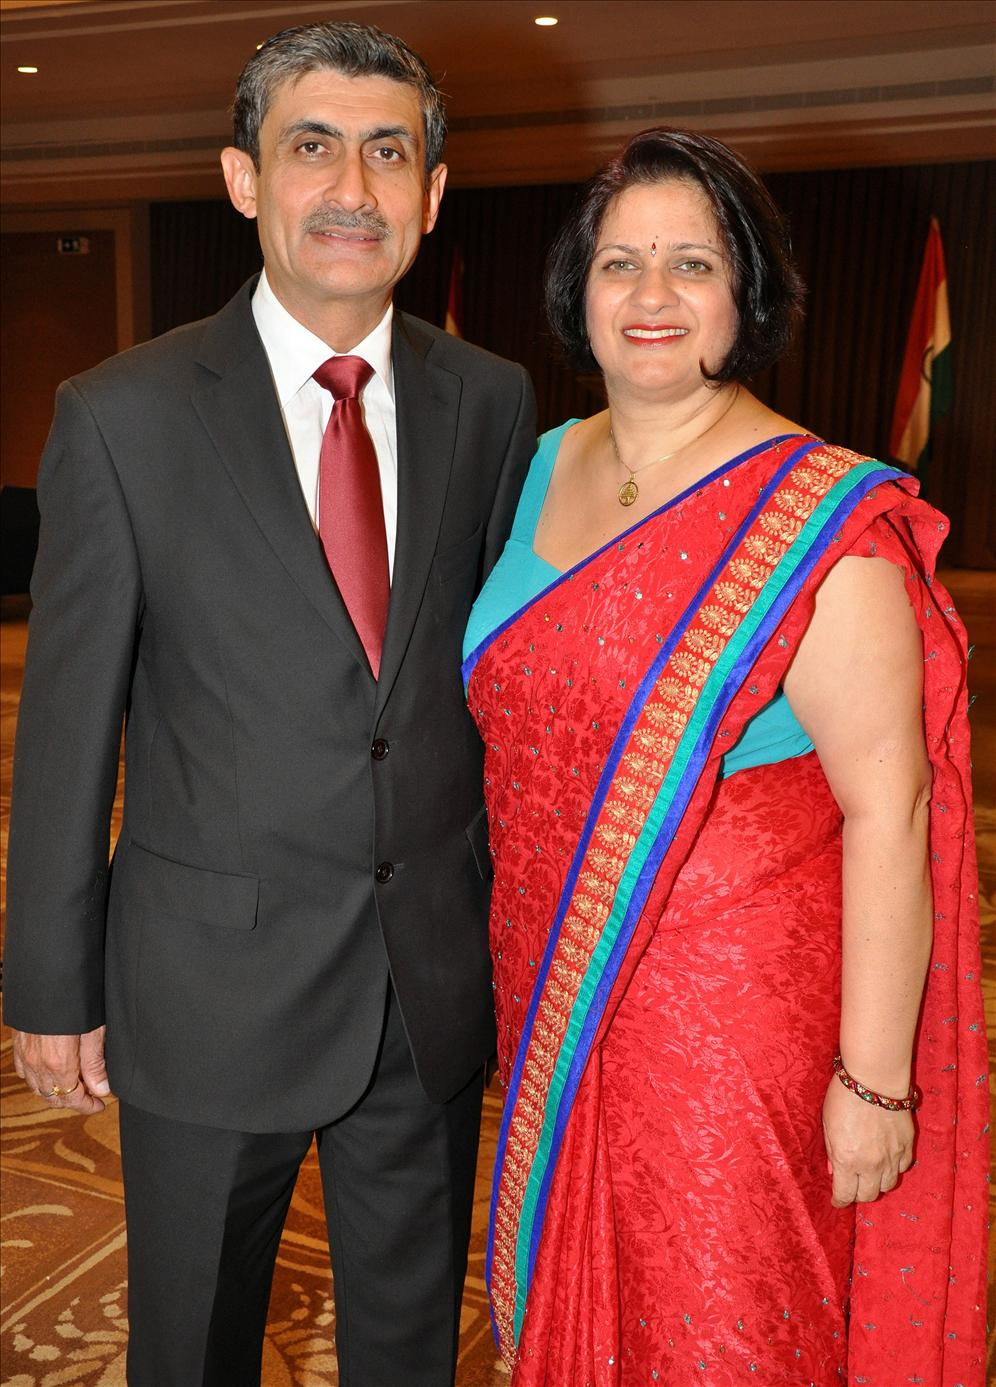 New Indian envoy seeks inclusive engagement